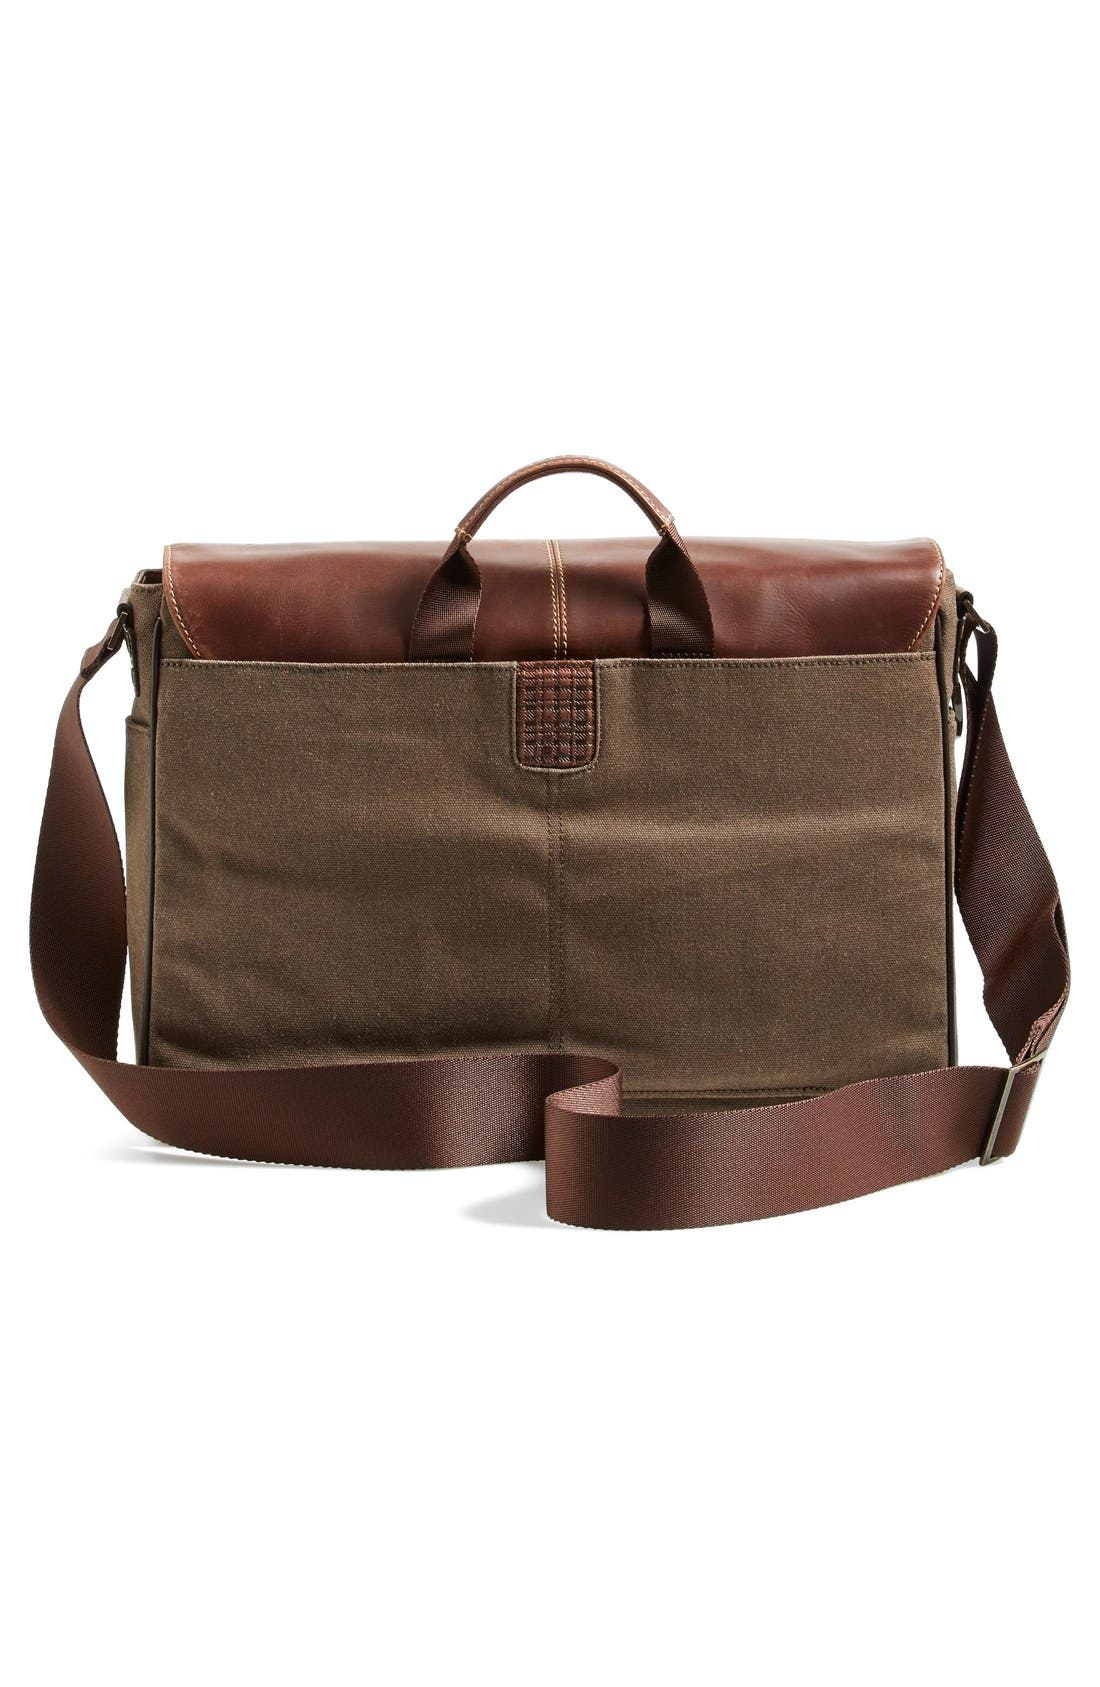 'Bryant' Messenger Bag,                             Alternate thumbnail 5, color,                             HEATHER BROWN